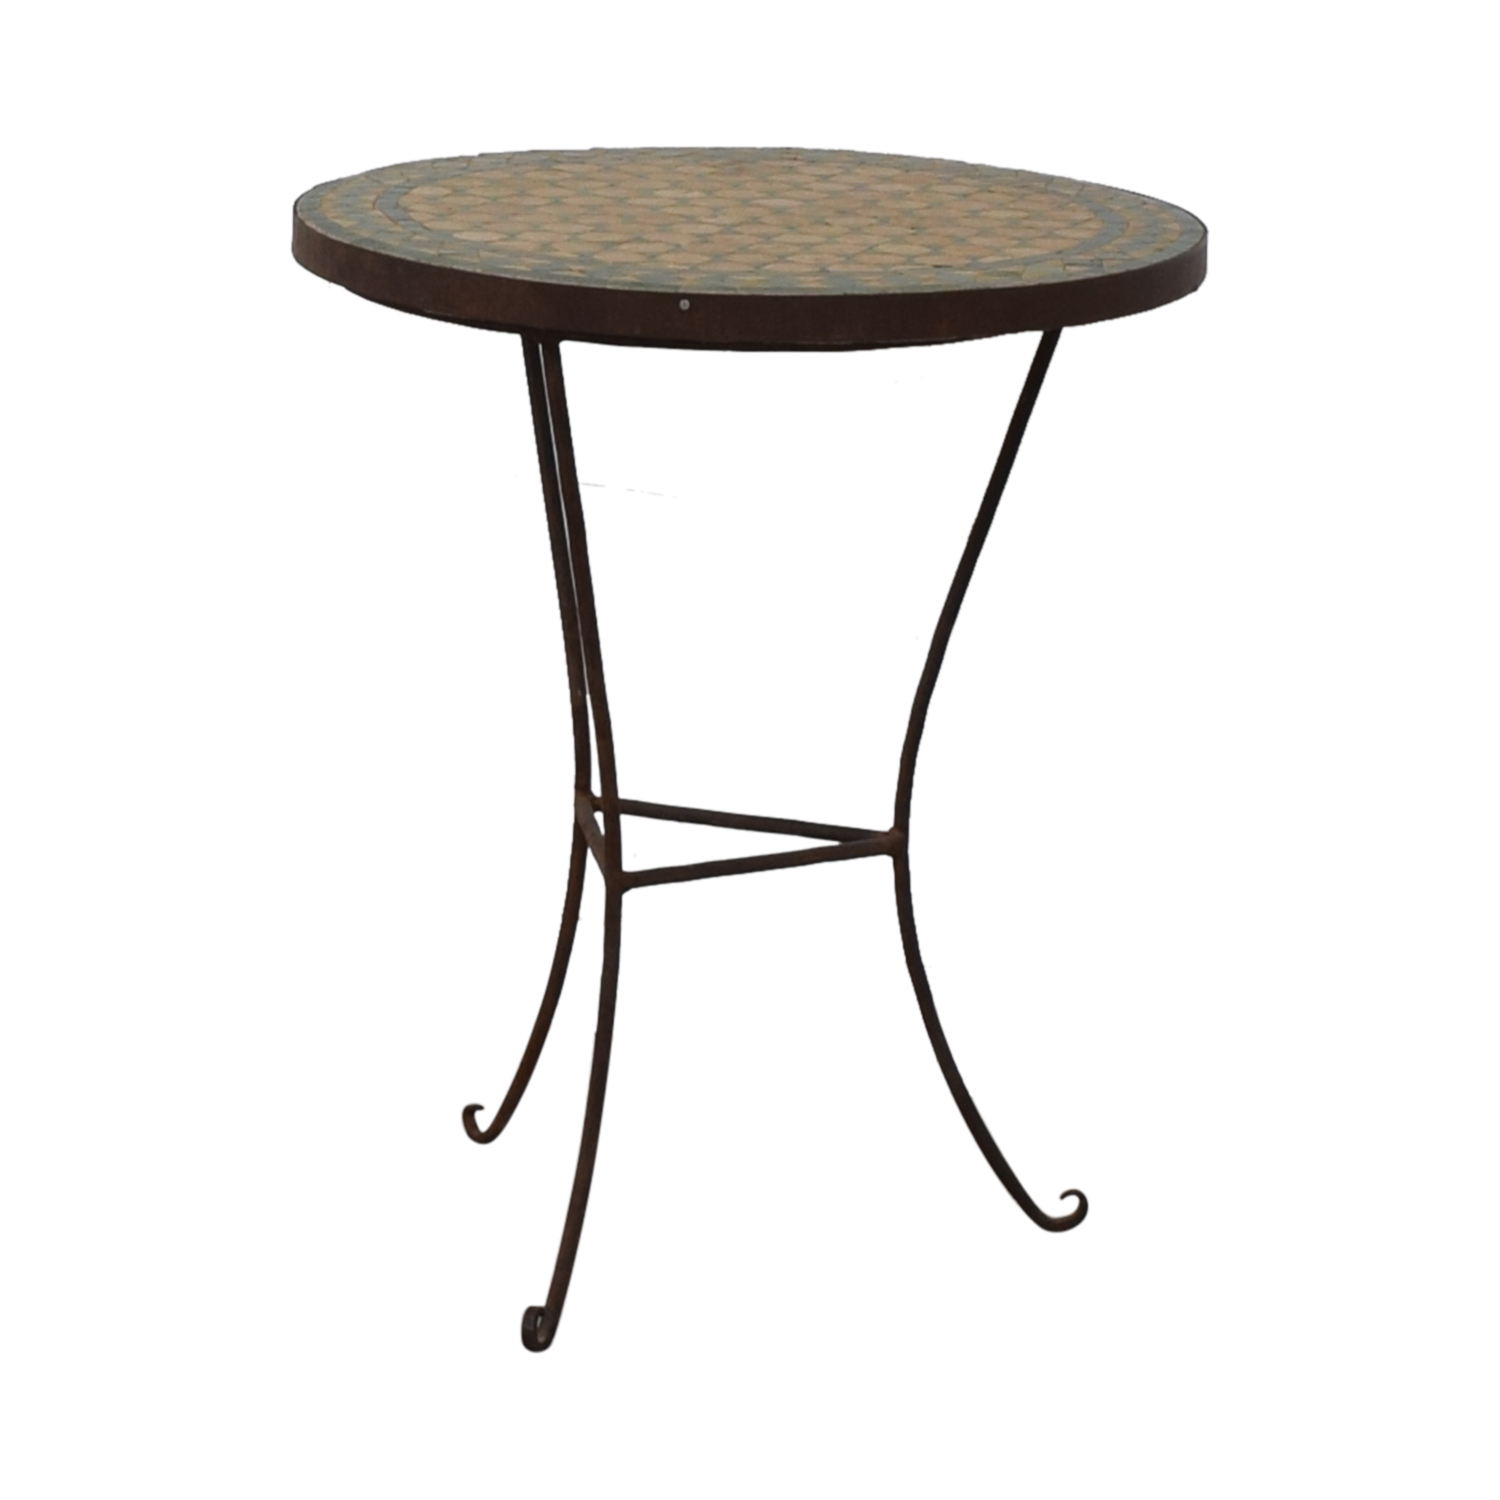 Moroccan Tile Table for sale